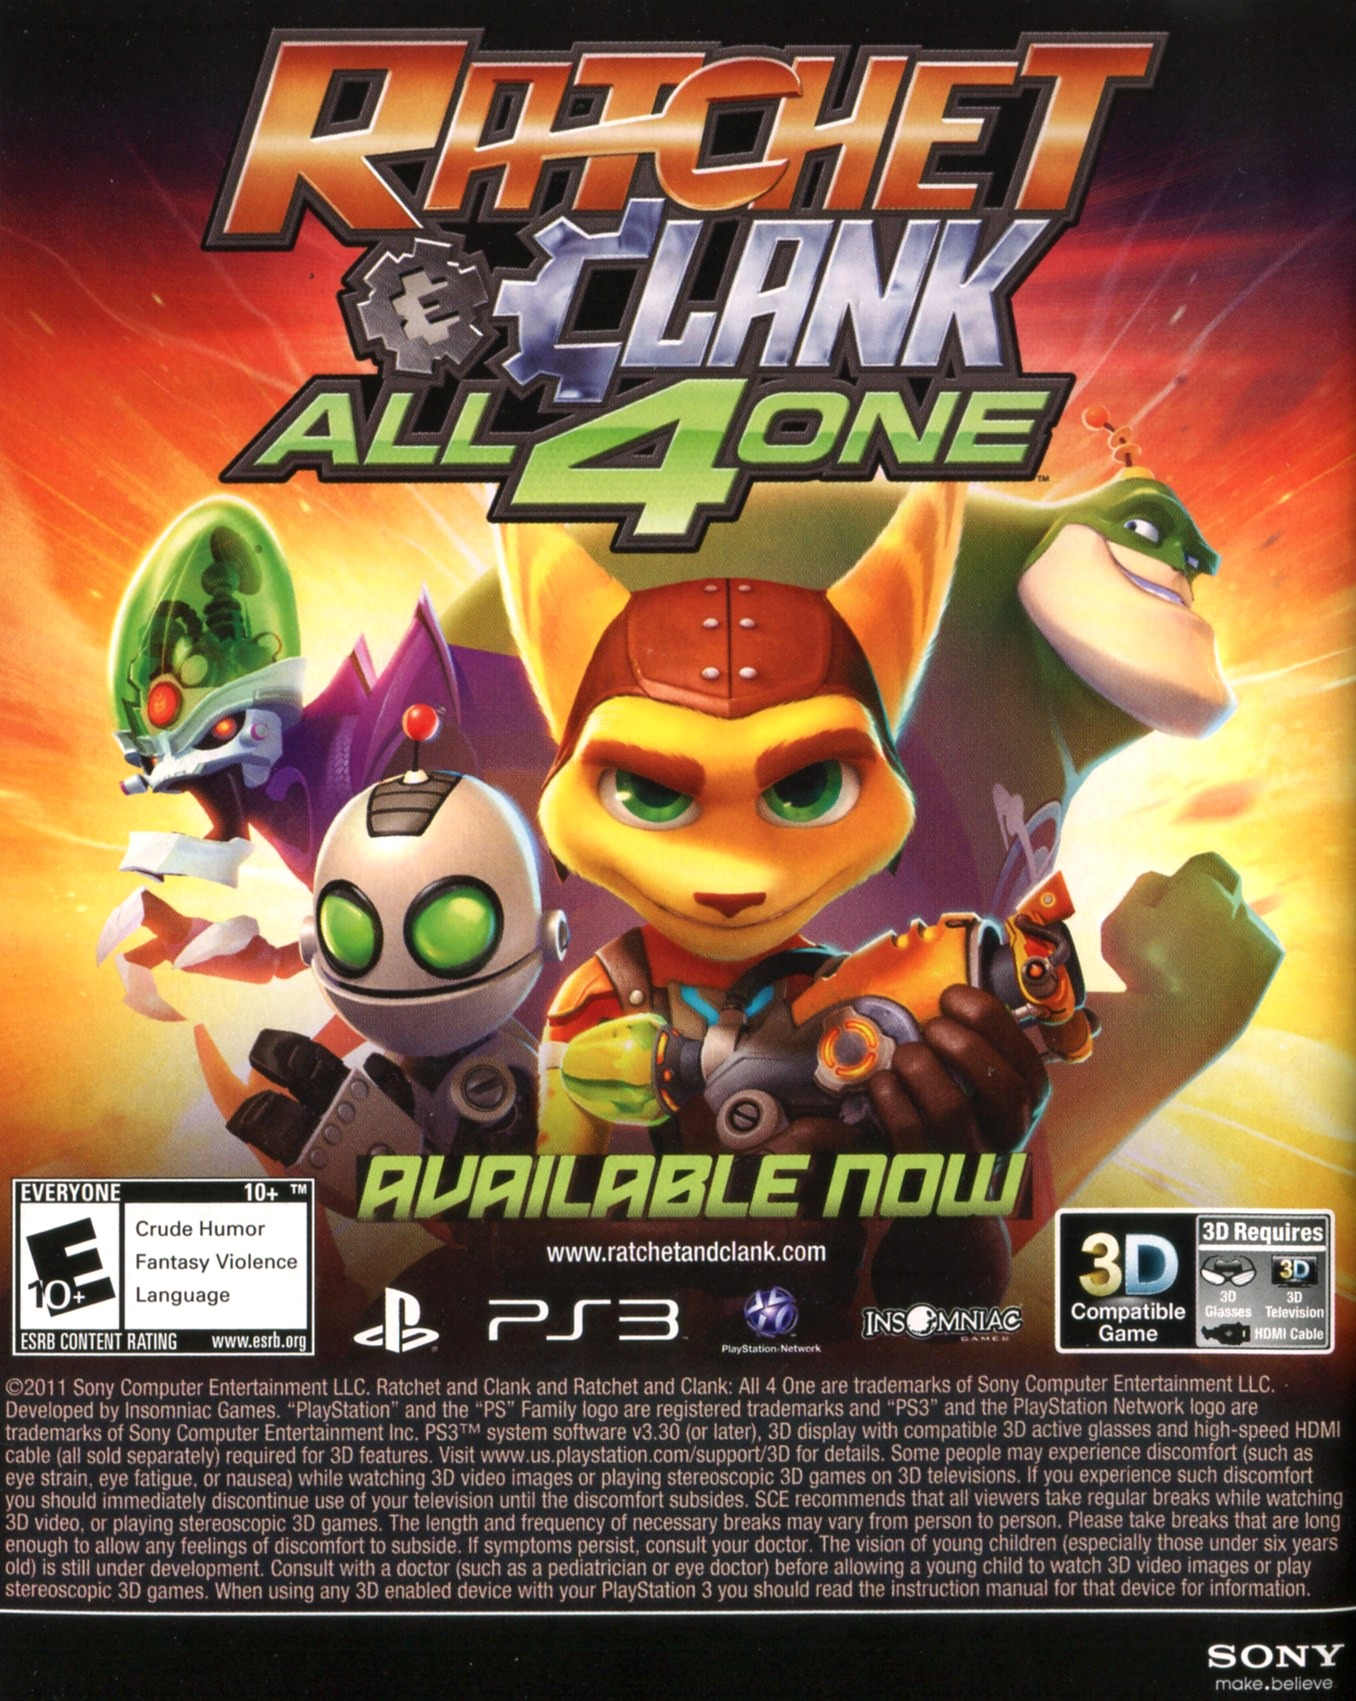 Ratchet & Clank: All 4 One (2011) promotional art - MobyGames